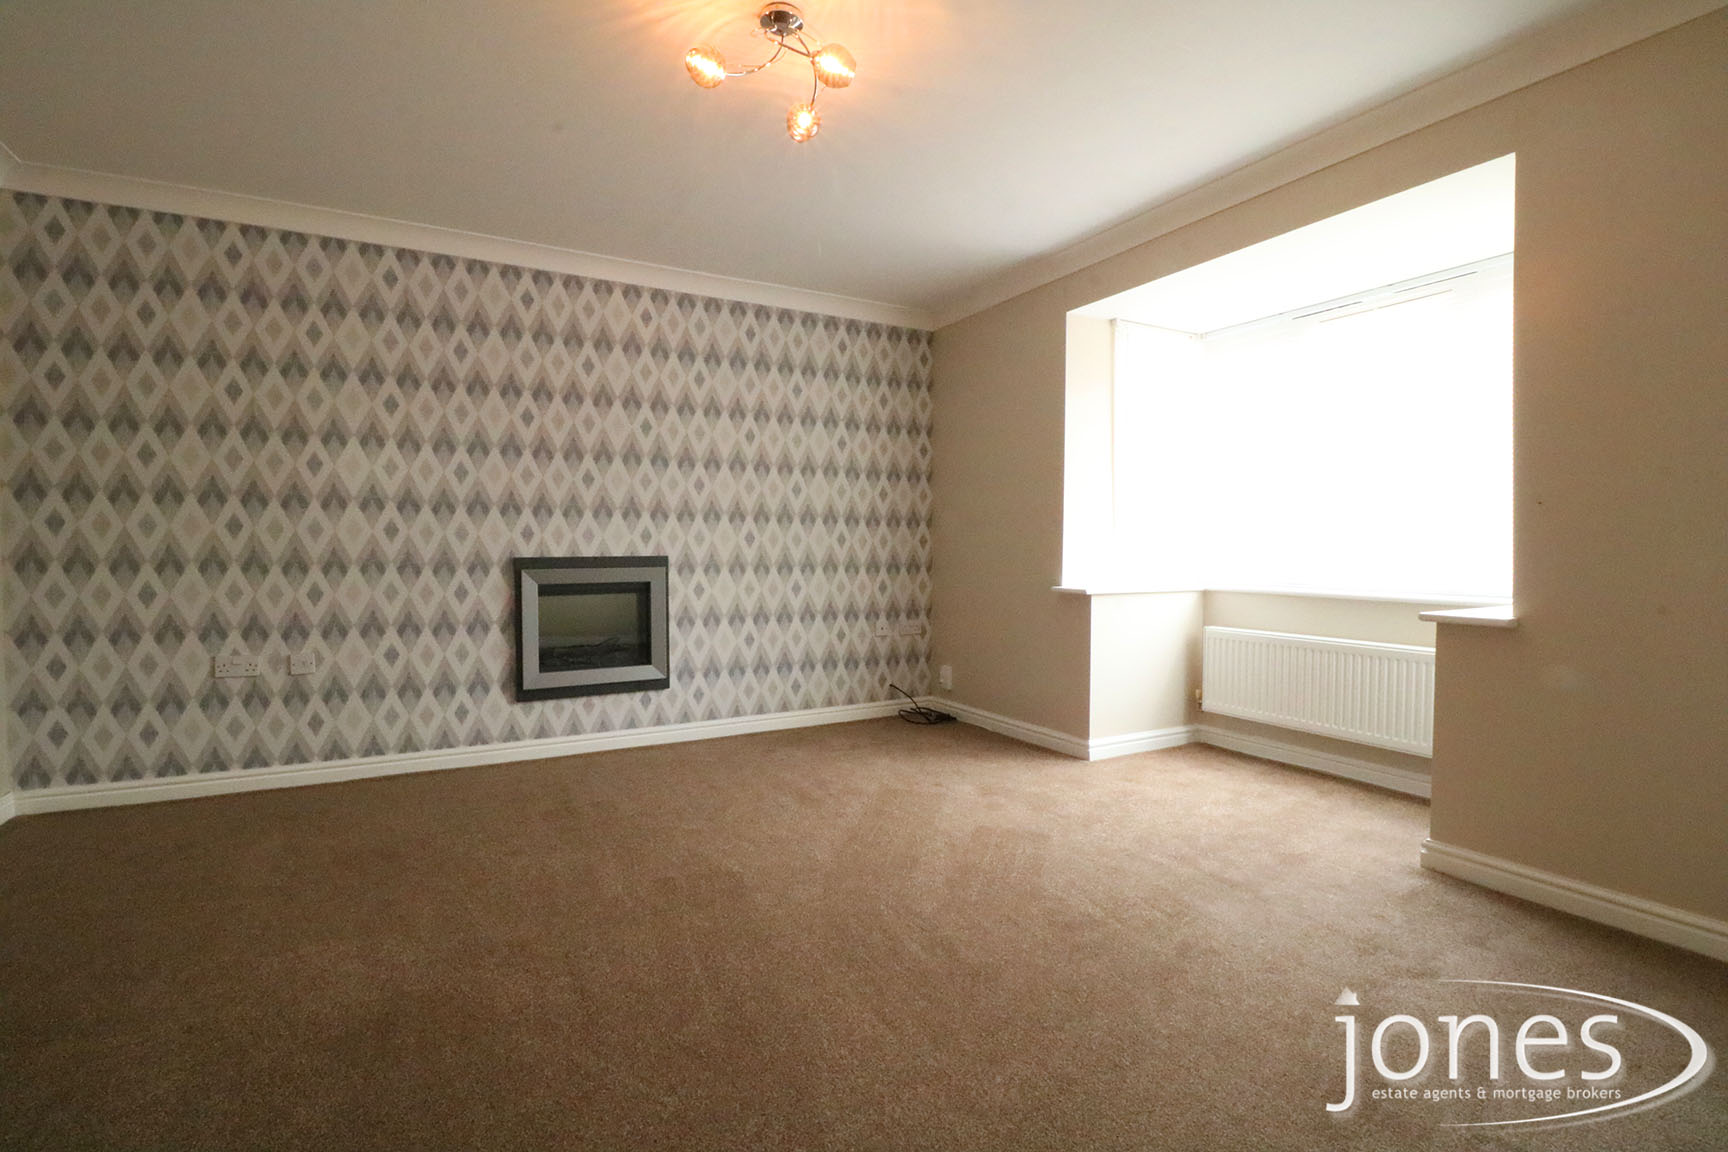 Home for Sale Let - Photo 02 Timothy Court, Stockton on Tees, TS18 3AU